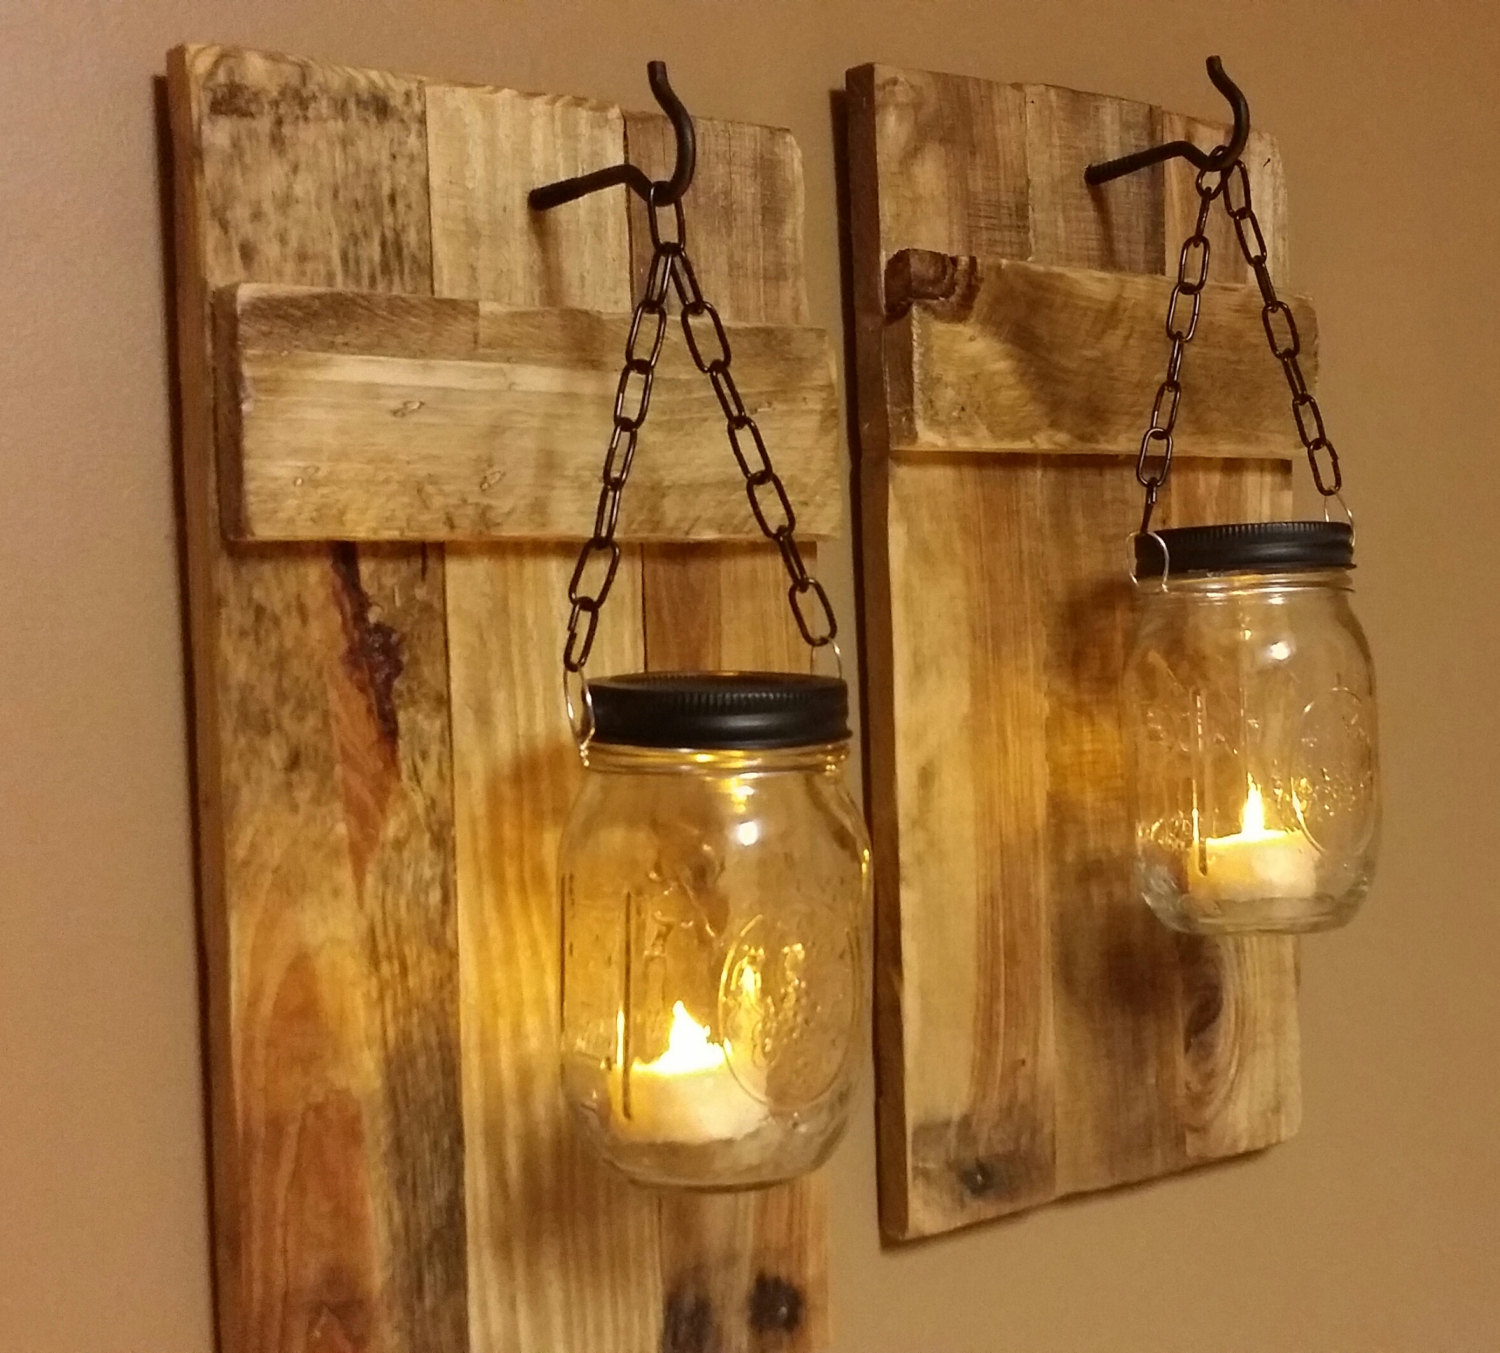 Diy Wall Decor Lights : Diy mason jar sconce making tutorial crafts